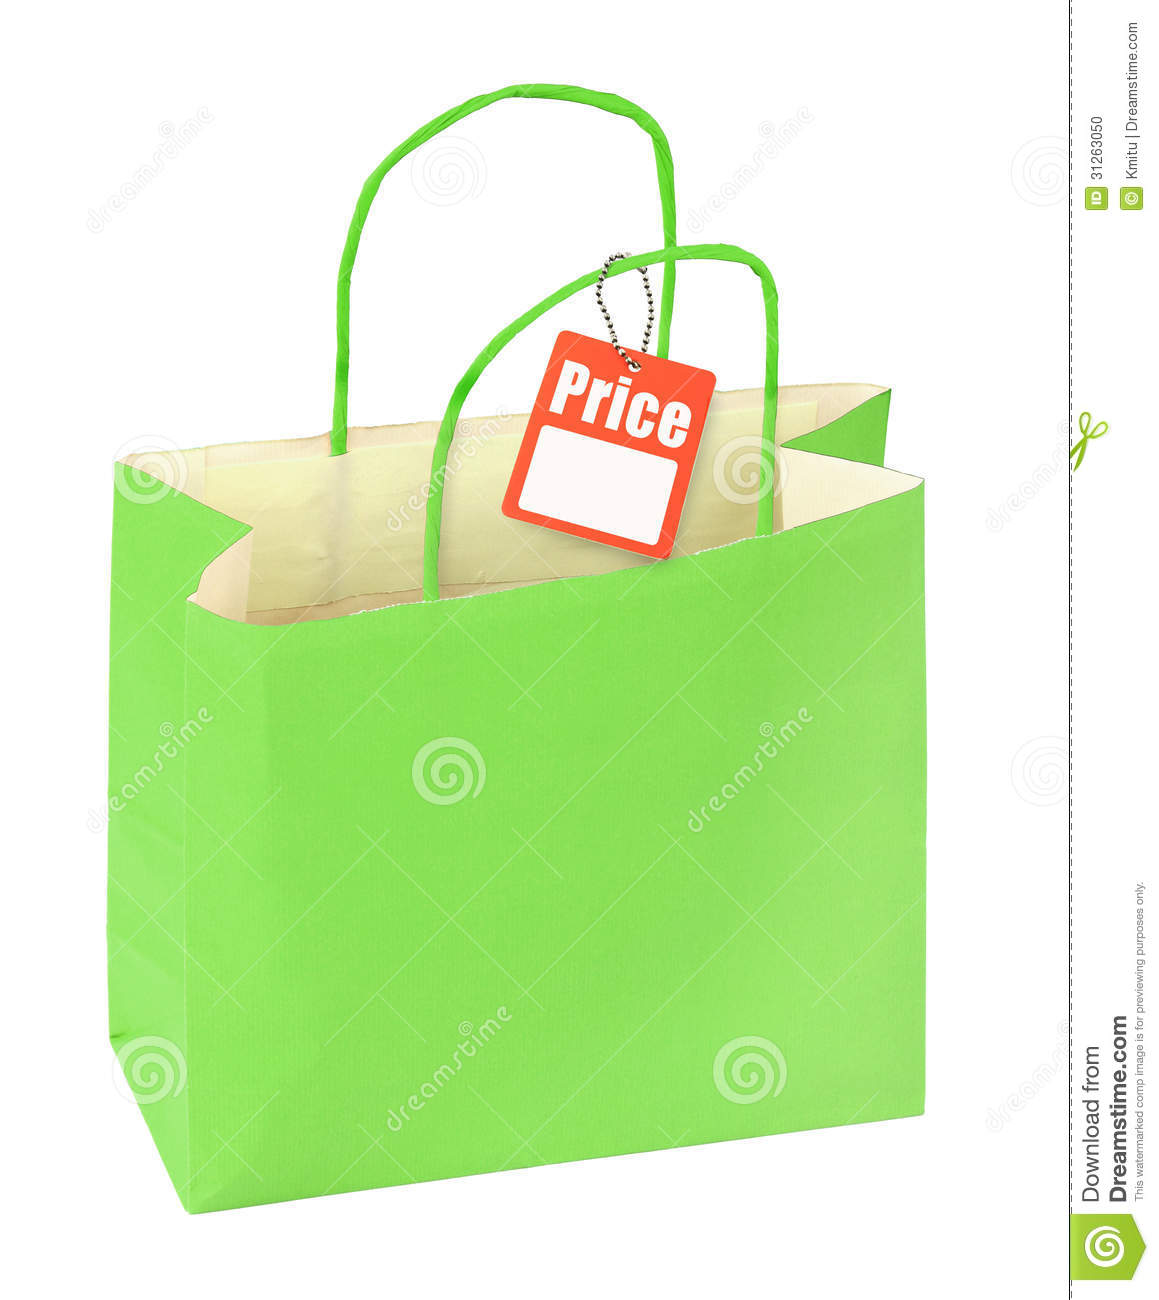 Shopping Bag And Price Tag Stock Photo - Image: 31263050